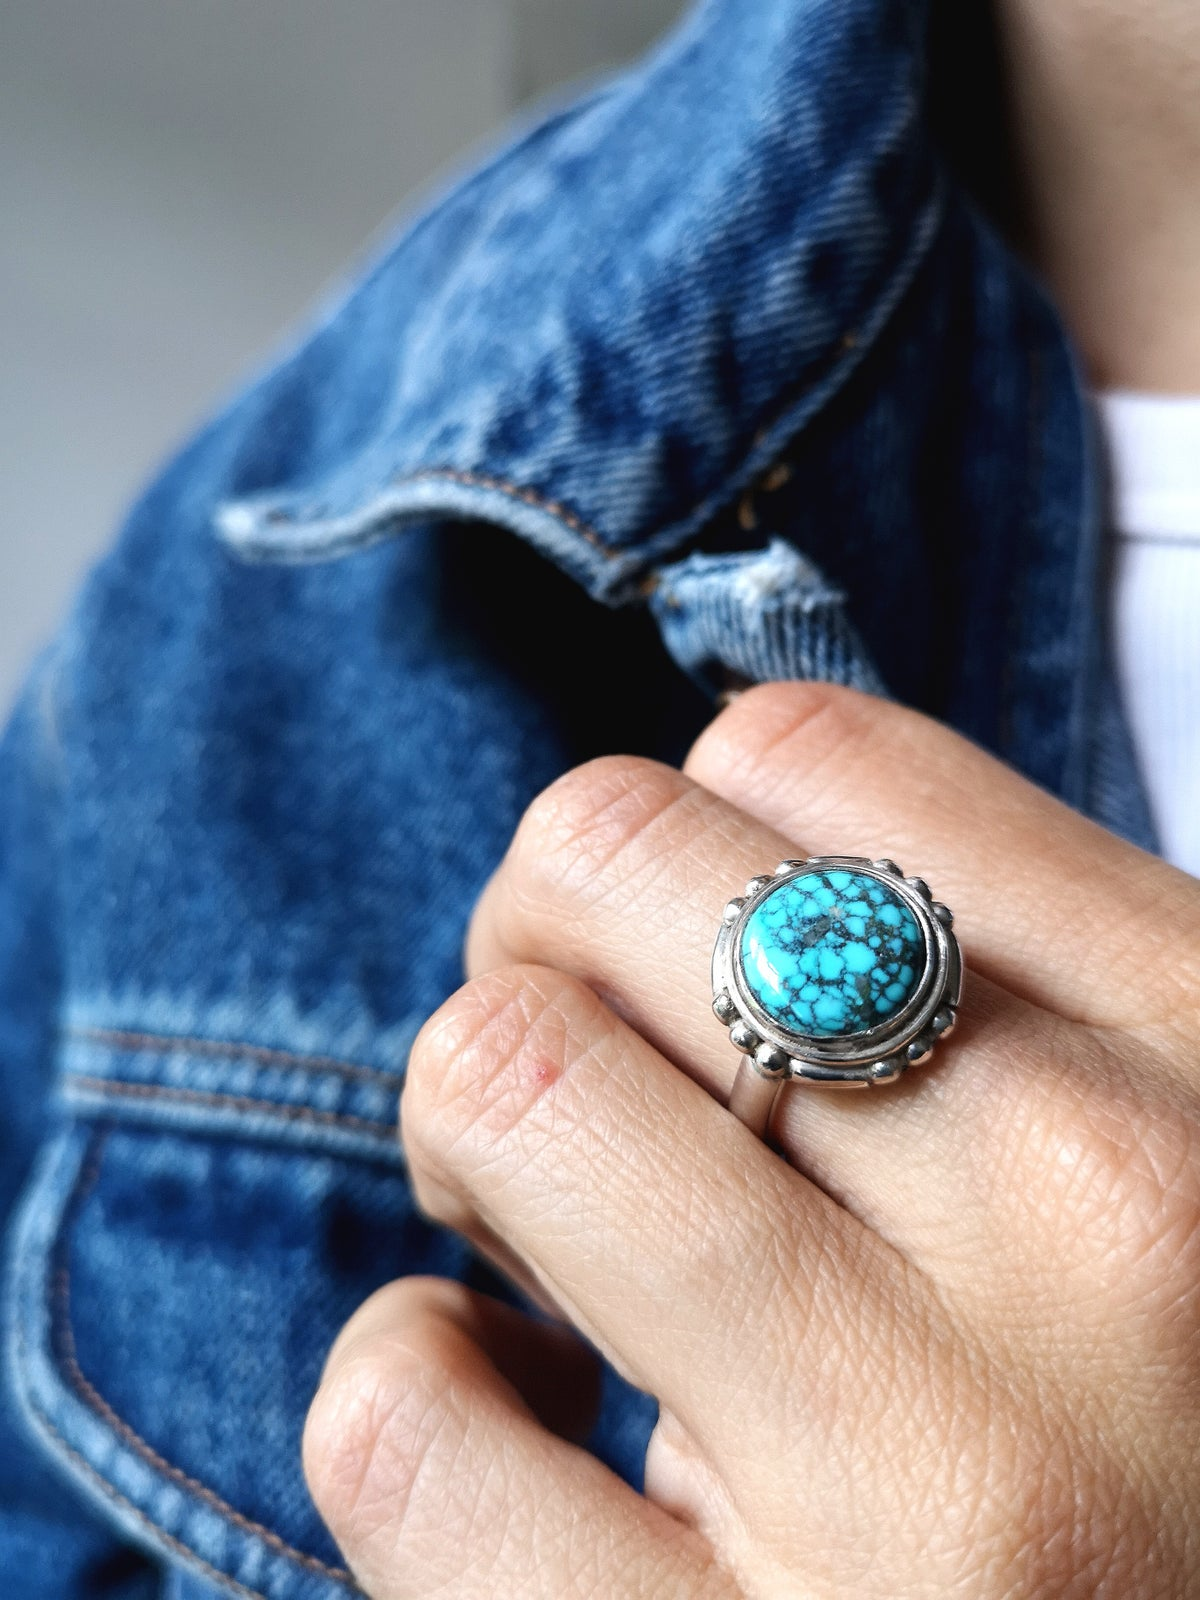 Image of Bague turquoise du Tibet - taille 52,5 - ref. 4688